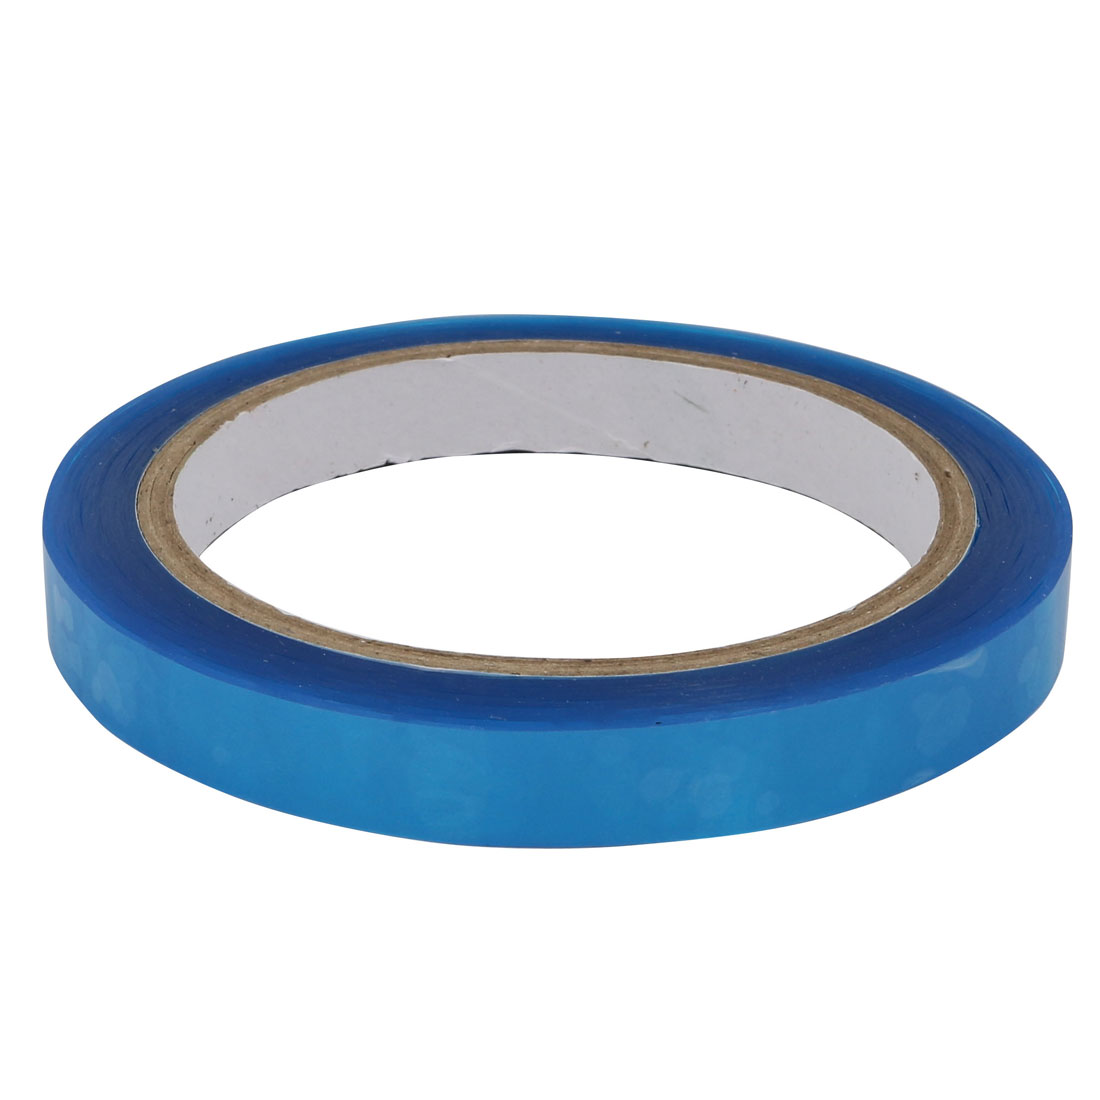 50 Meters Length 12mm Width PET Electric Single-Sided Tape Household Refrigerator Tape - image 1 of 2